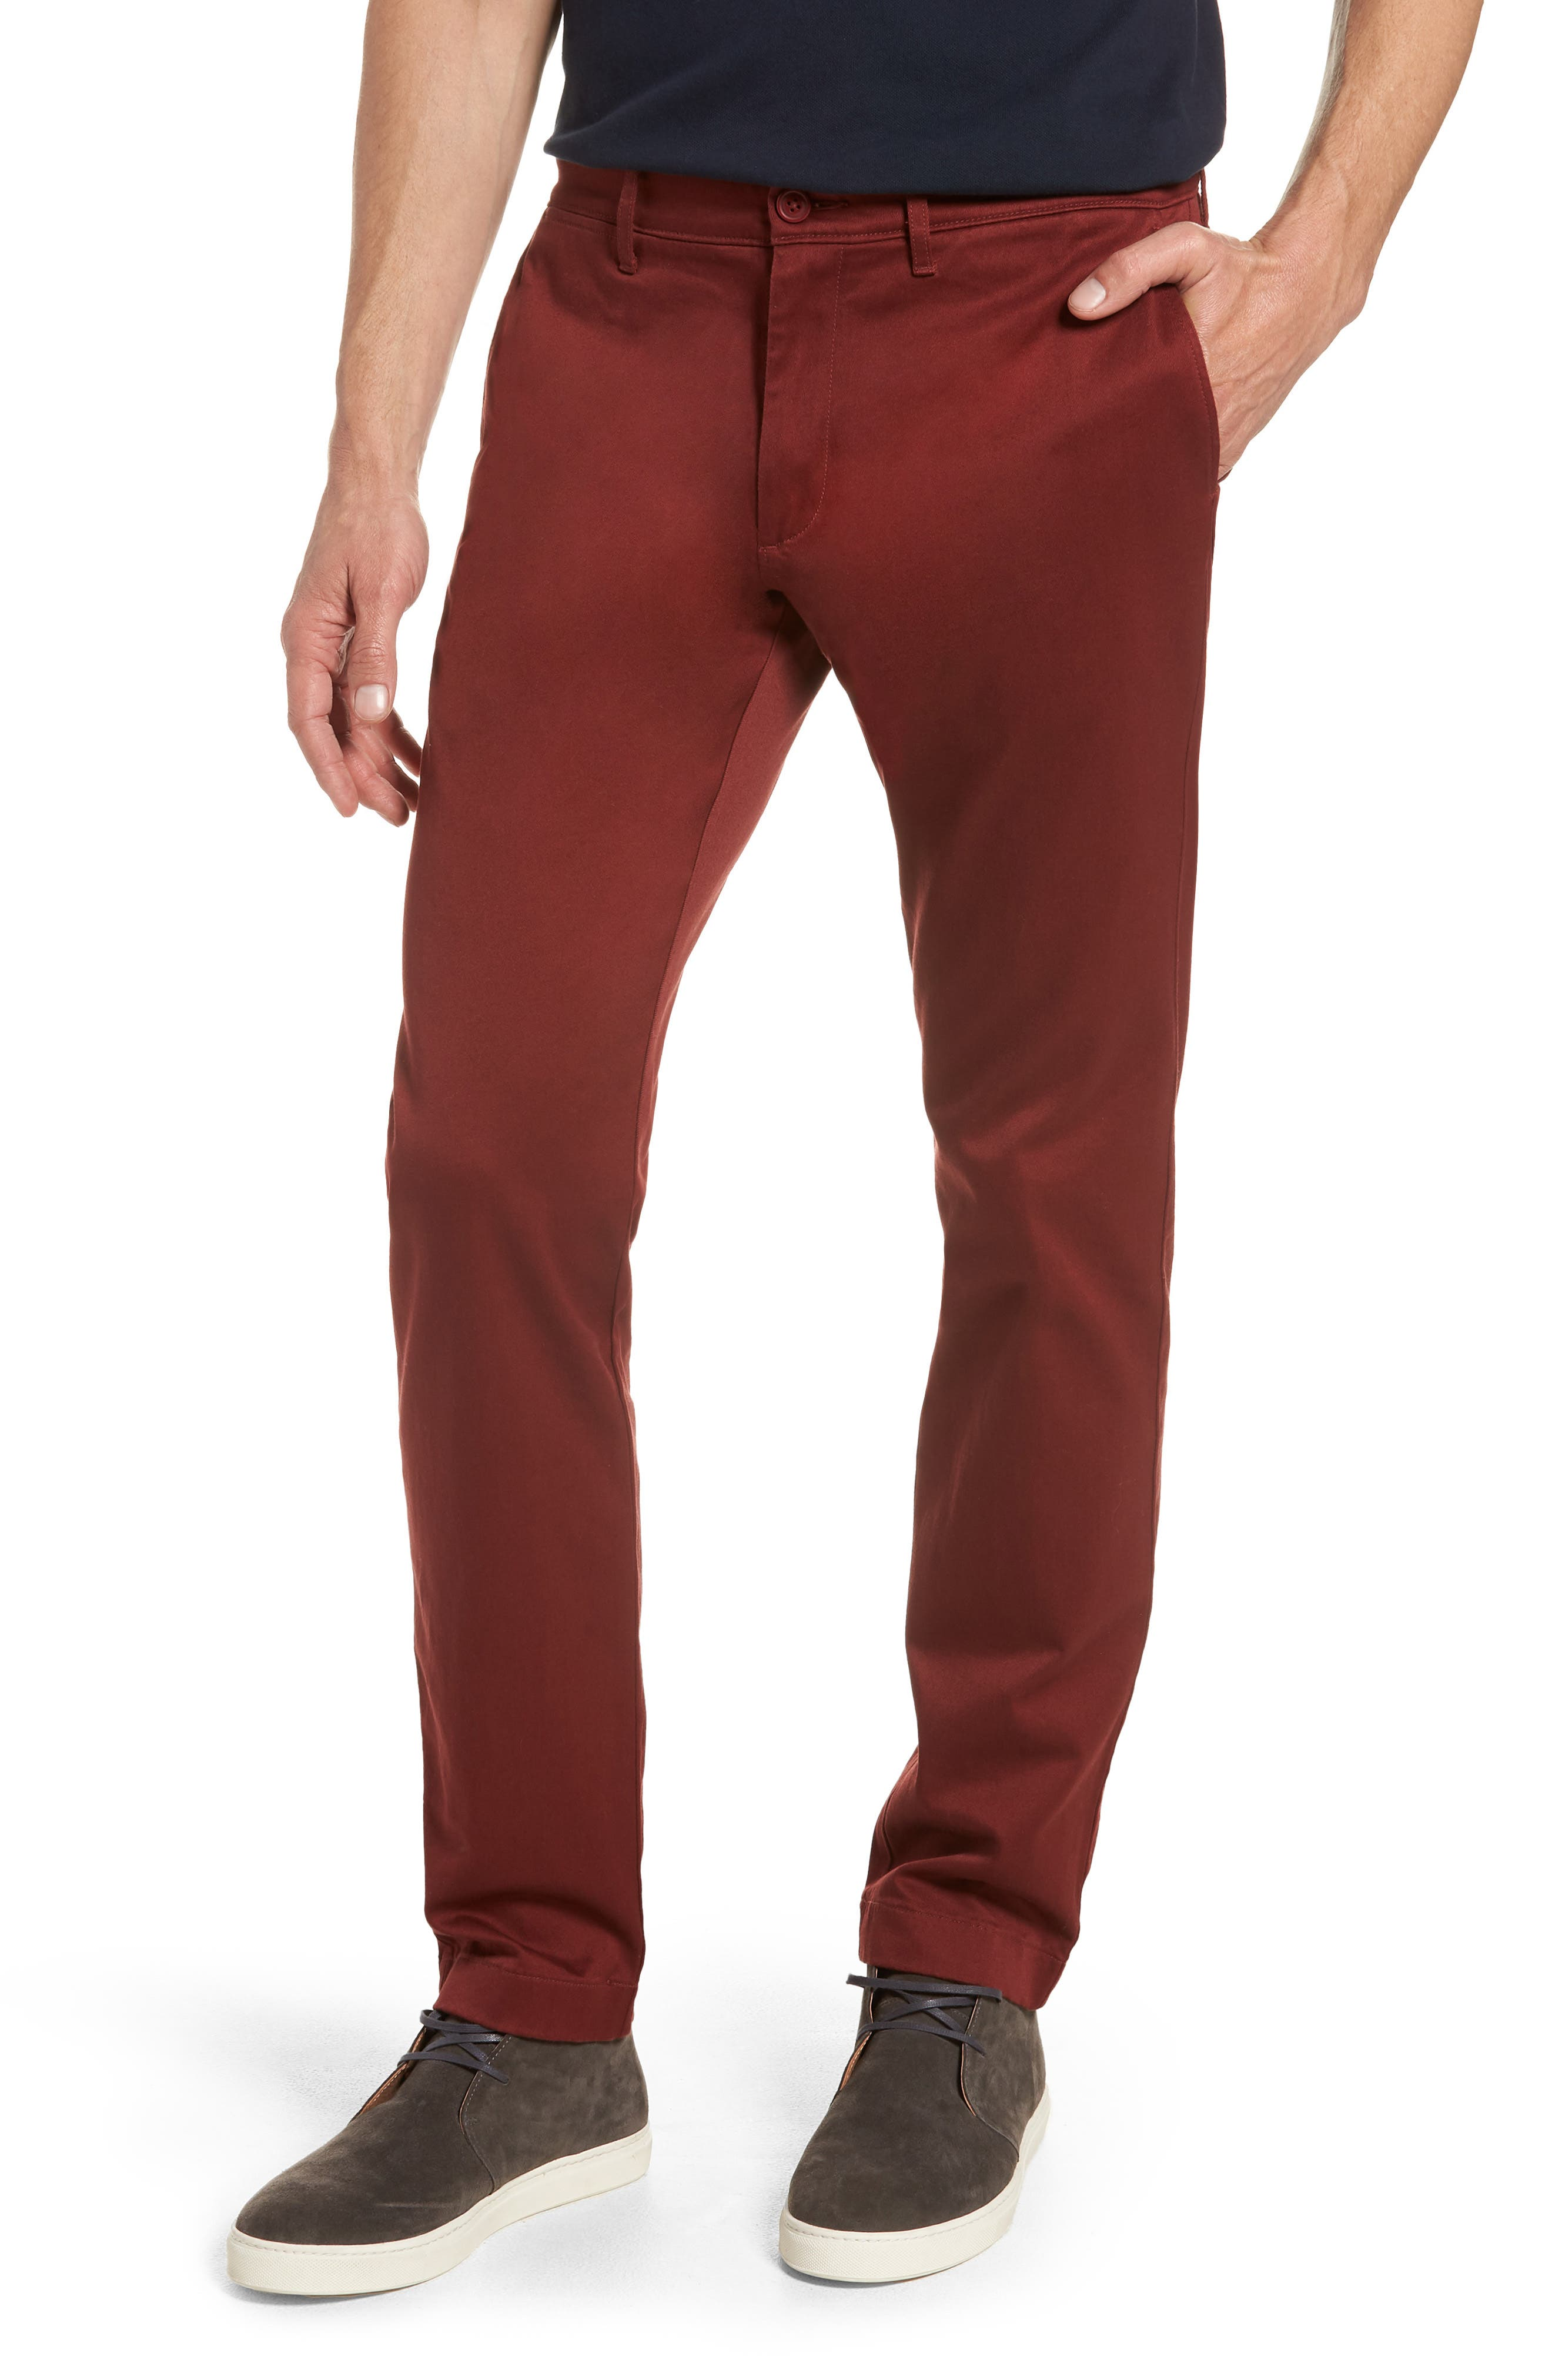 484 Slim Fit Stretch Chino Pants,                             Main thumbnail 7, color,